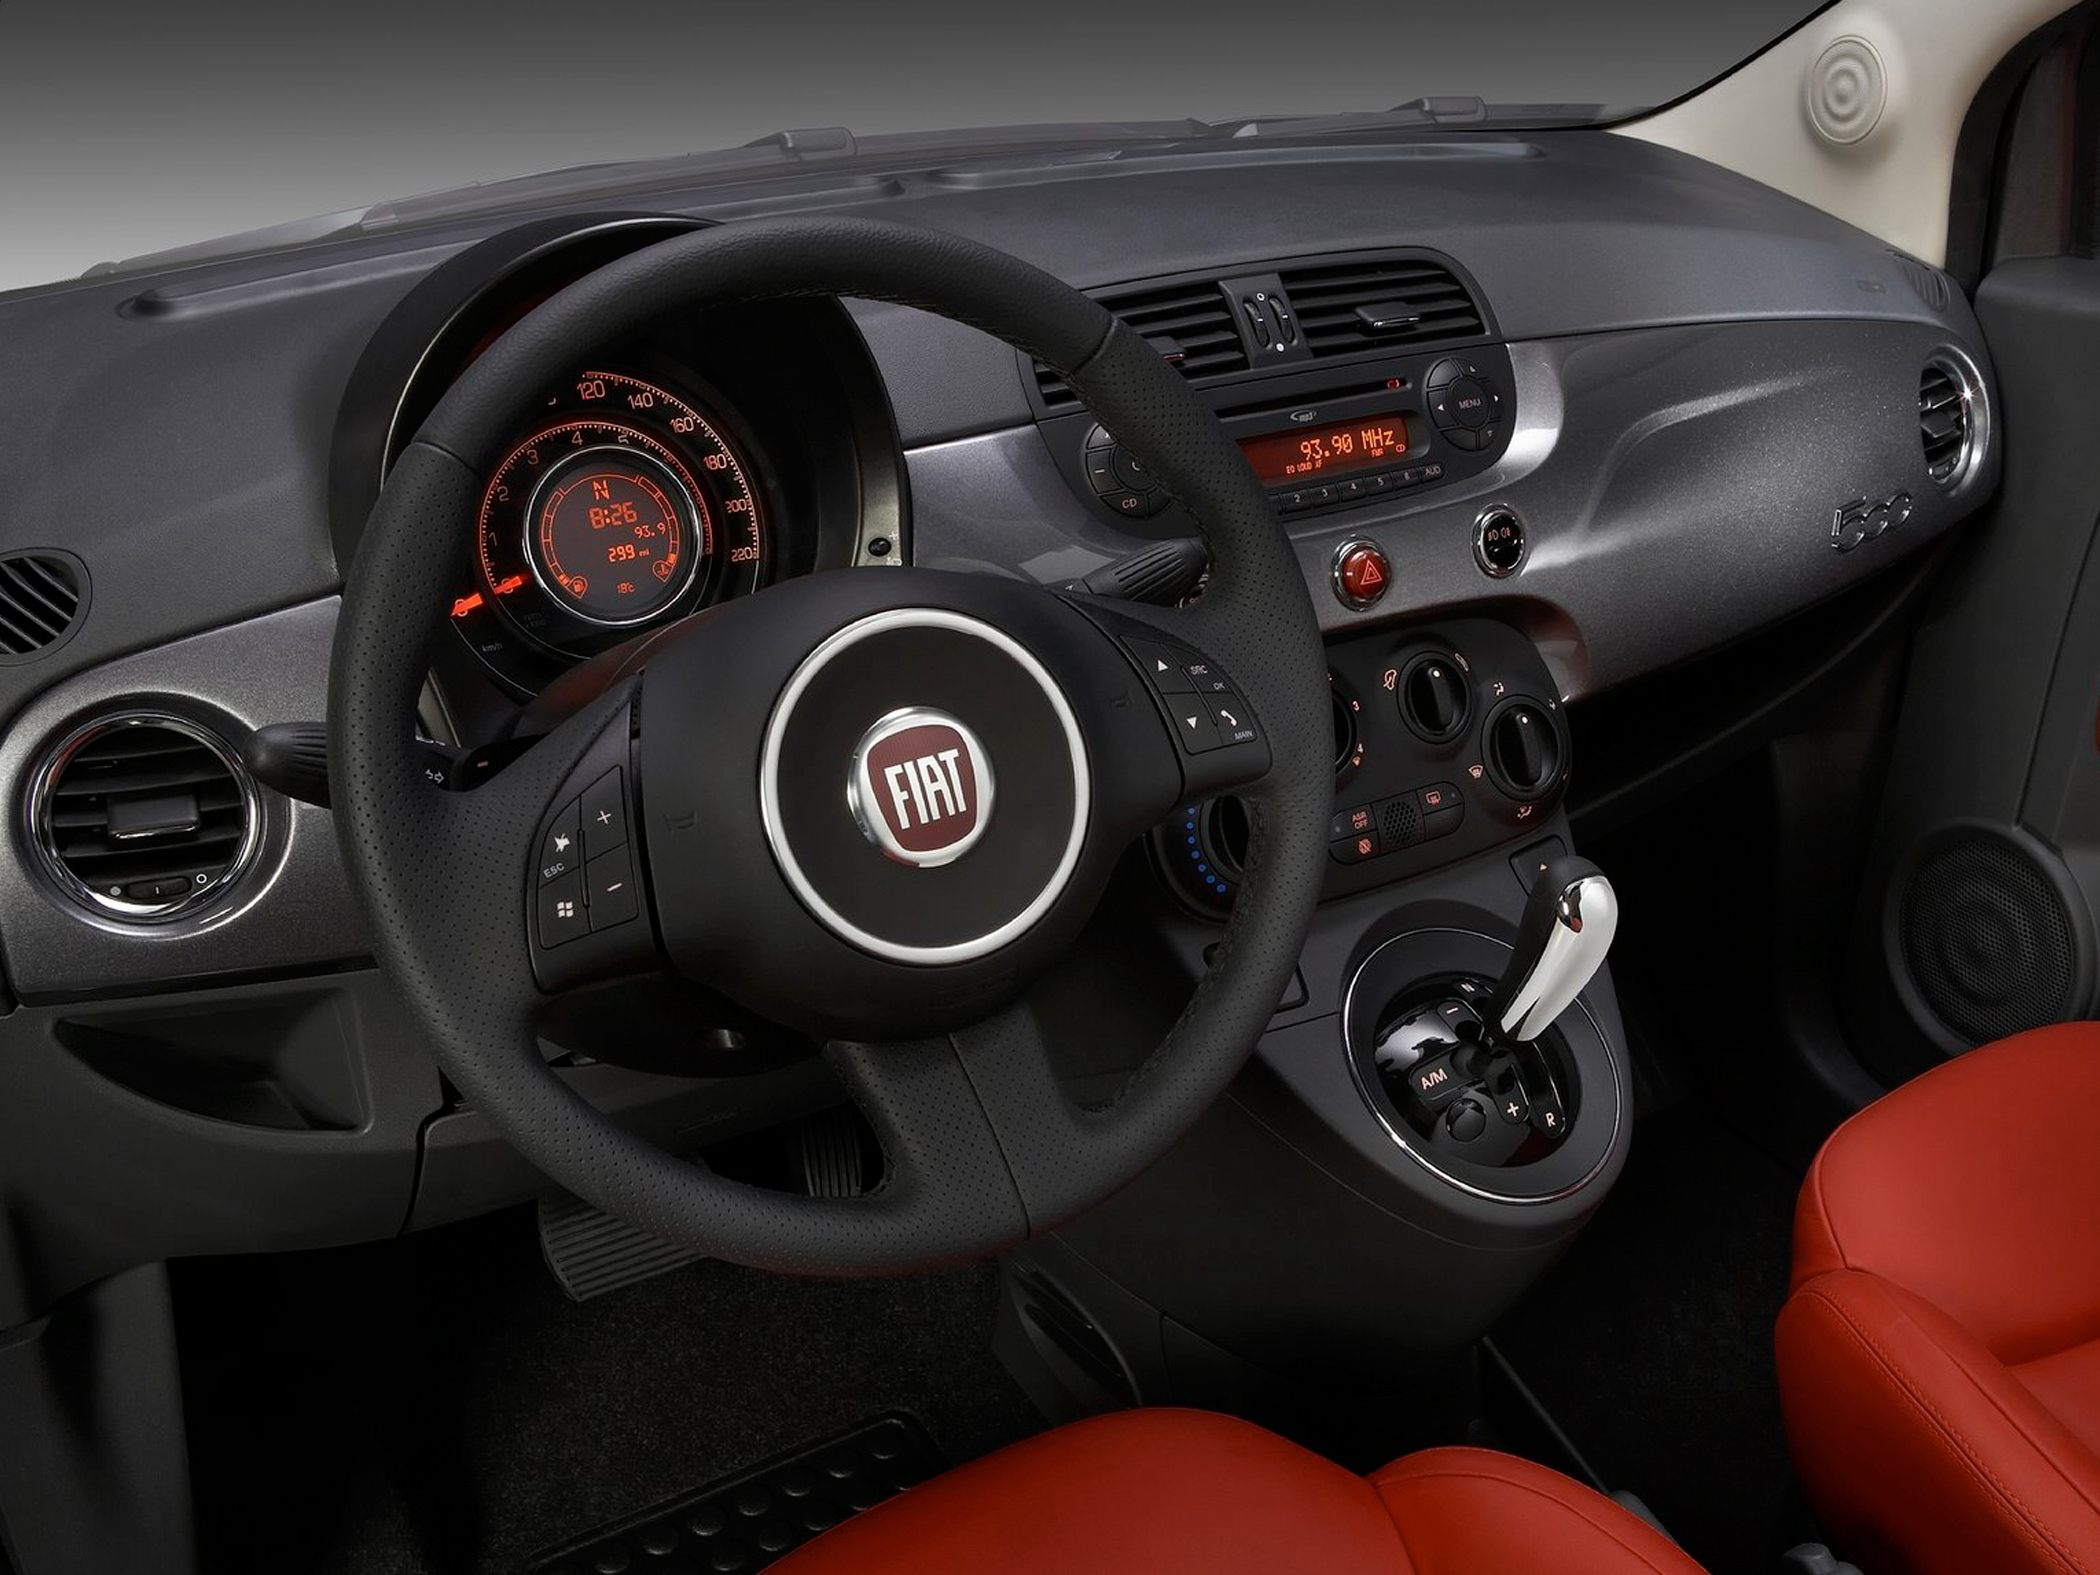 Fiat 2013 500 Hottest Hatchback designed for car enthusiasts #8